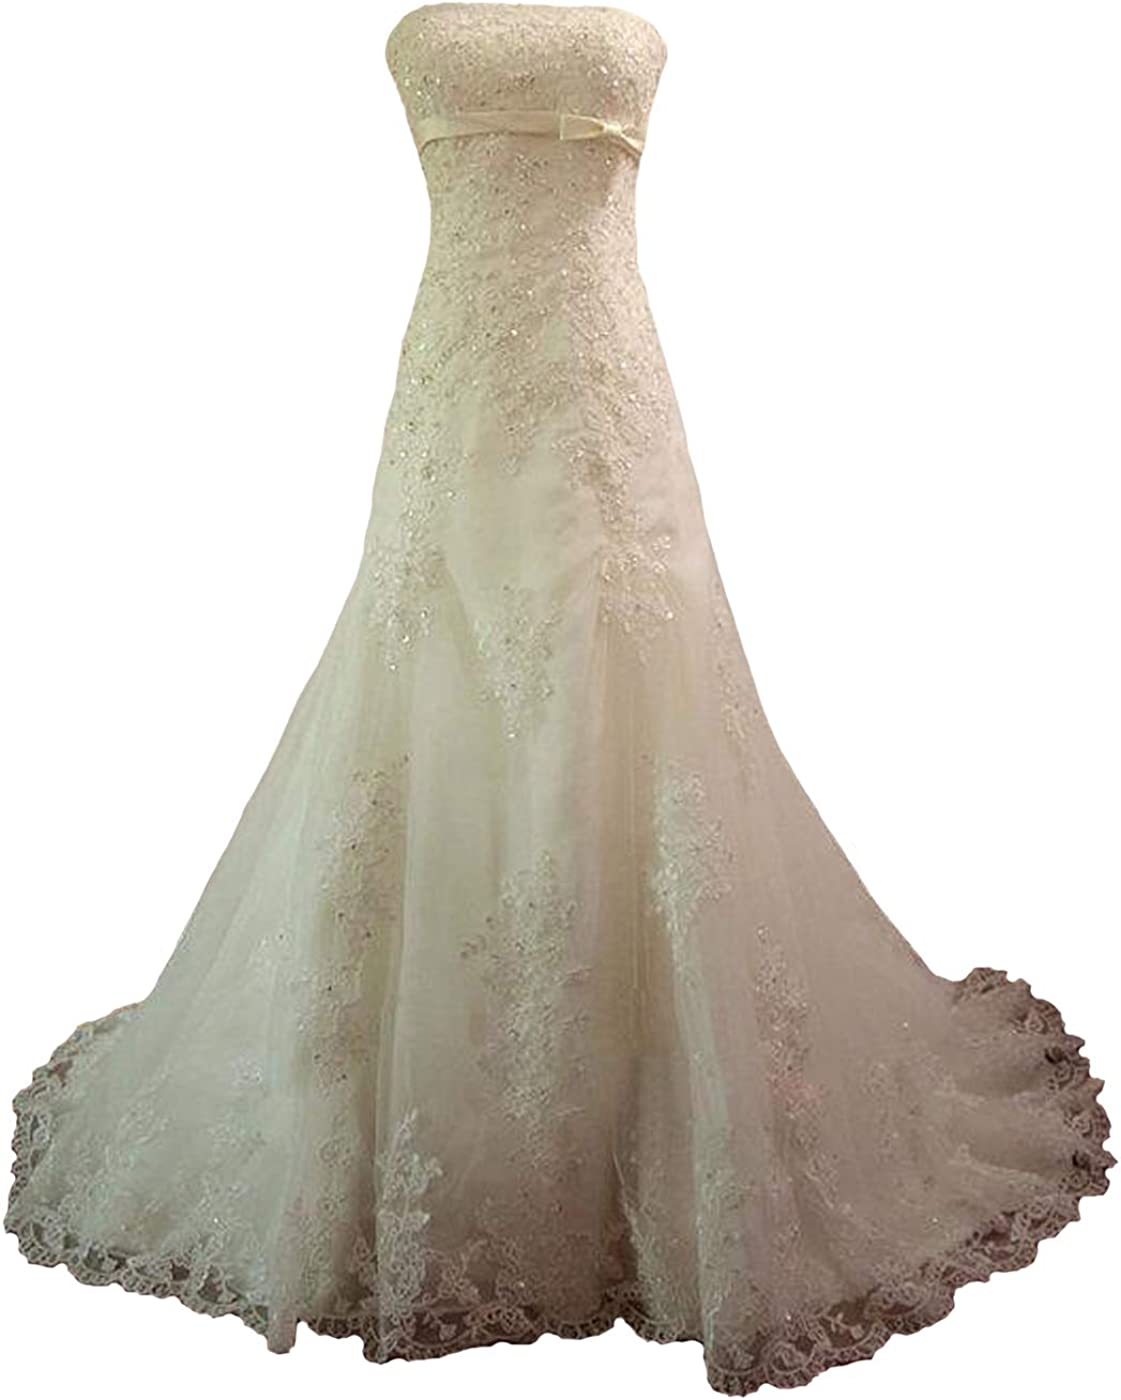 Fair Lady Strapless Max 20 OFF Lace Tulle Mermaid Wedding for ...